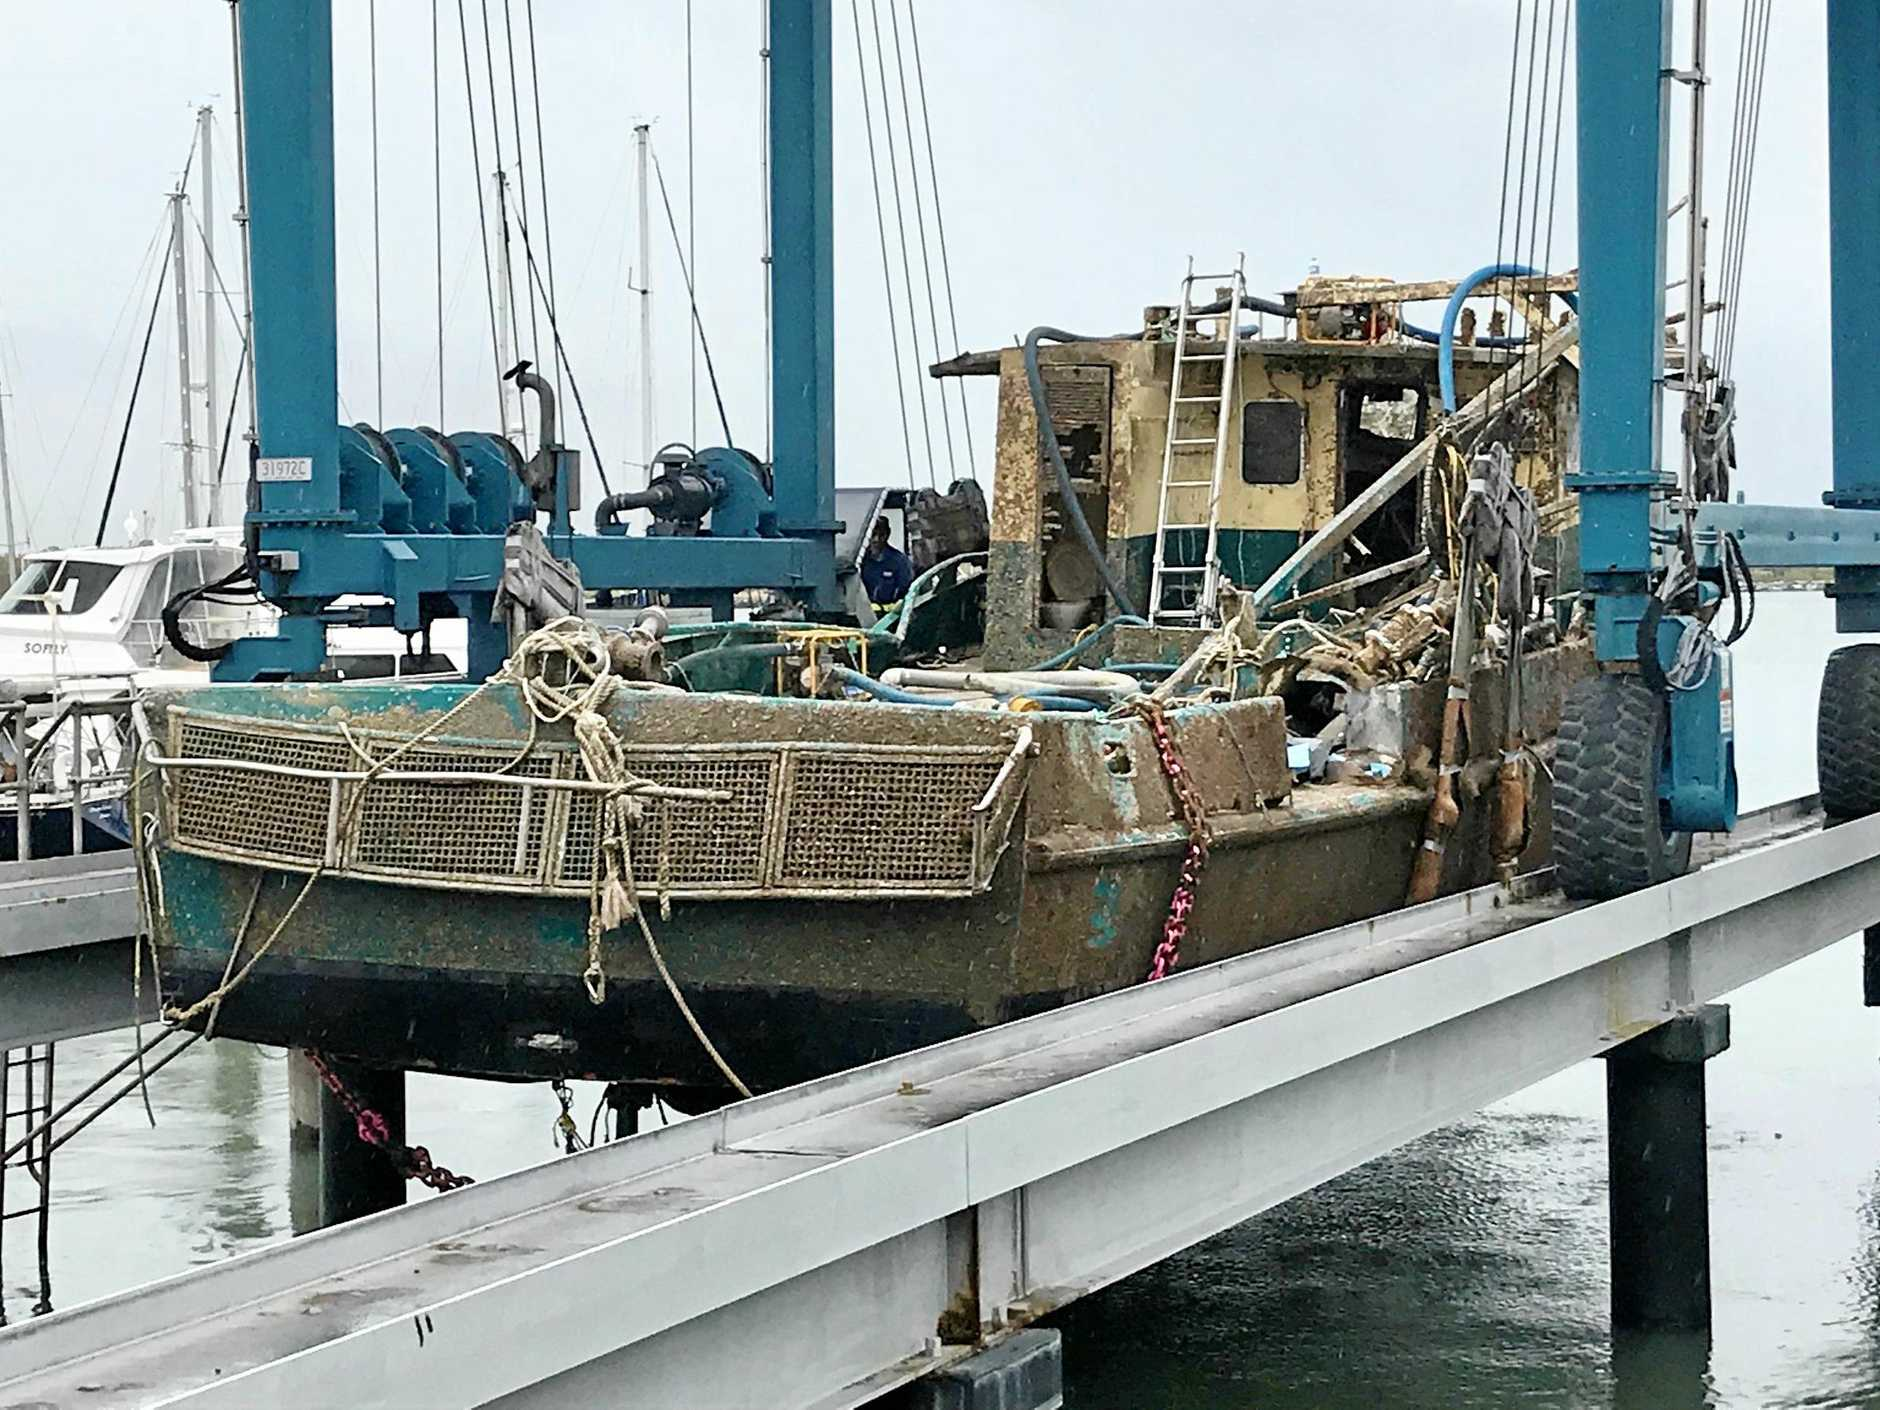 The Dianne being lifted out of the water after its recovery.